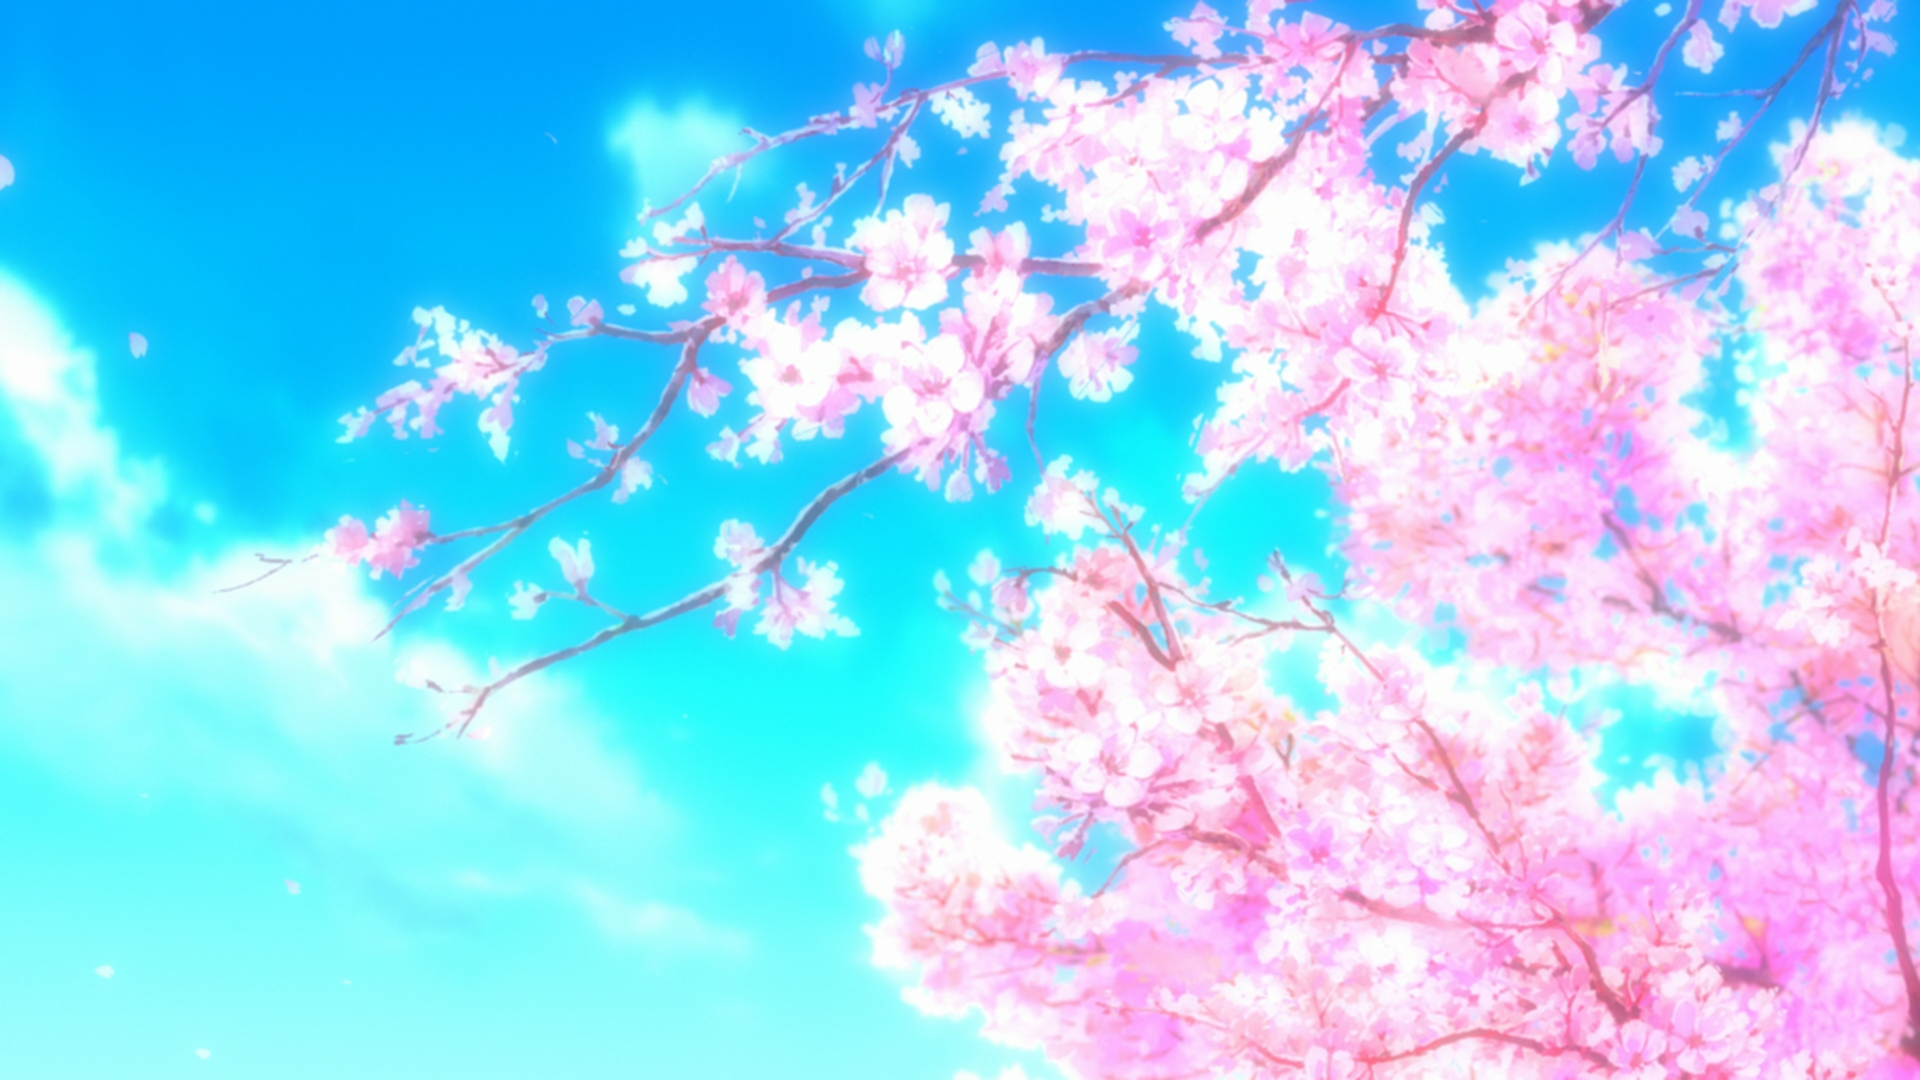 Cherry Blossom Desktop Wallpapers Wallpaper